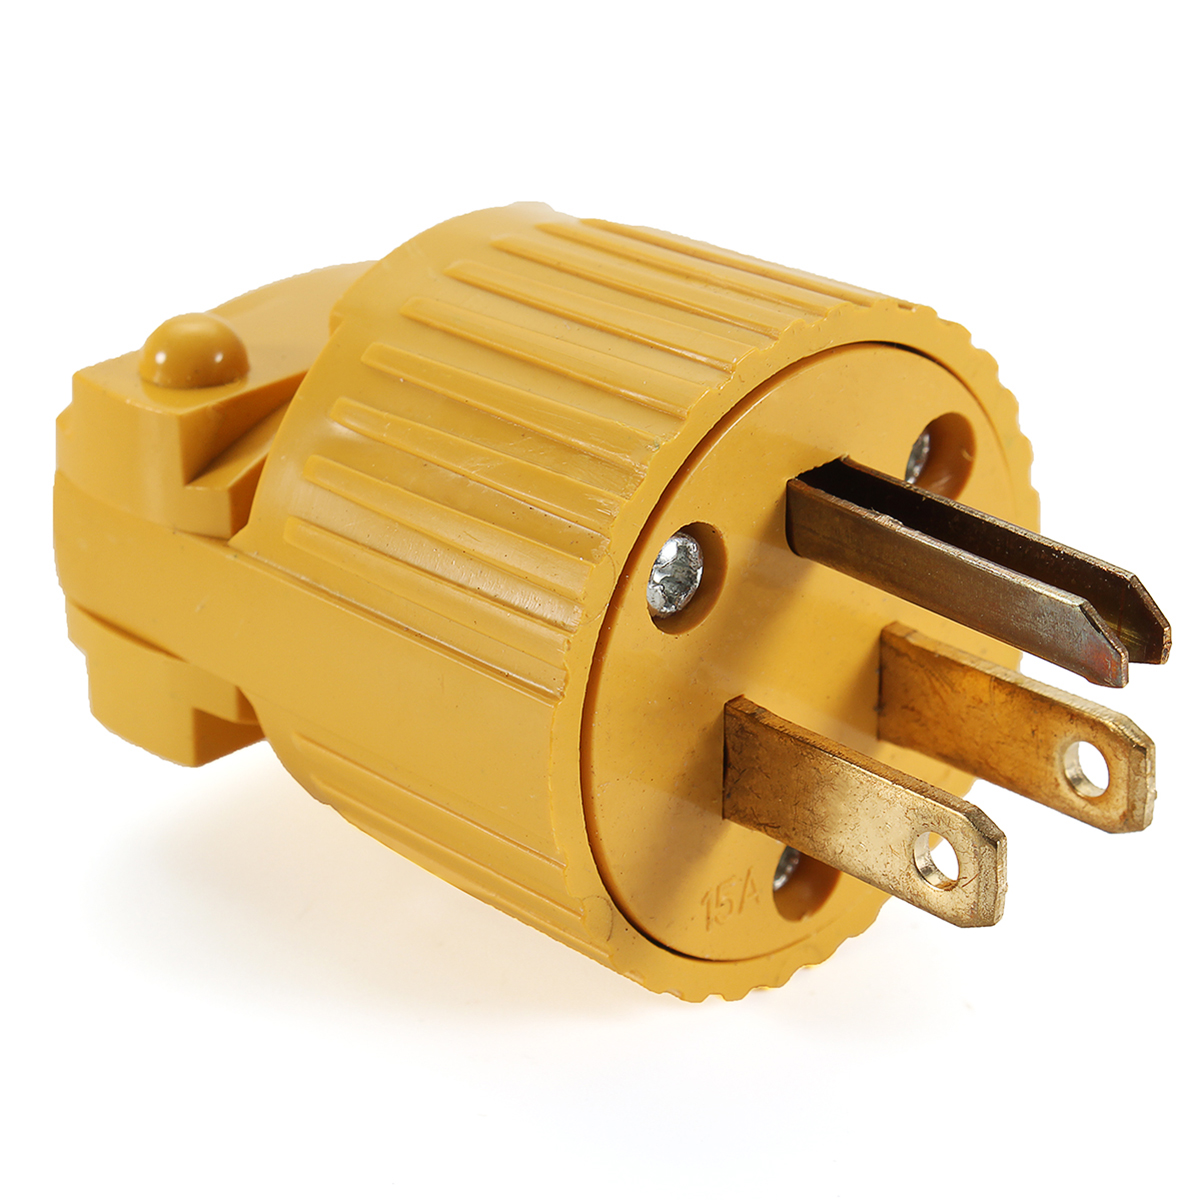 Extension Cord Replacement Electrical Plugs 15amp 125v 3 Prong Ebay